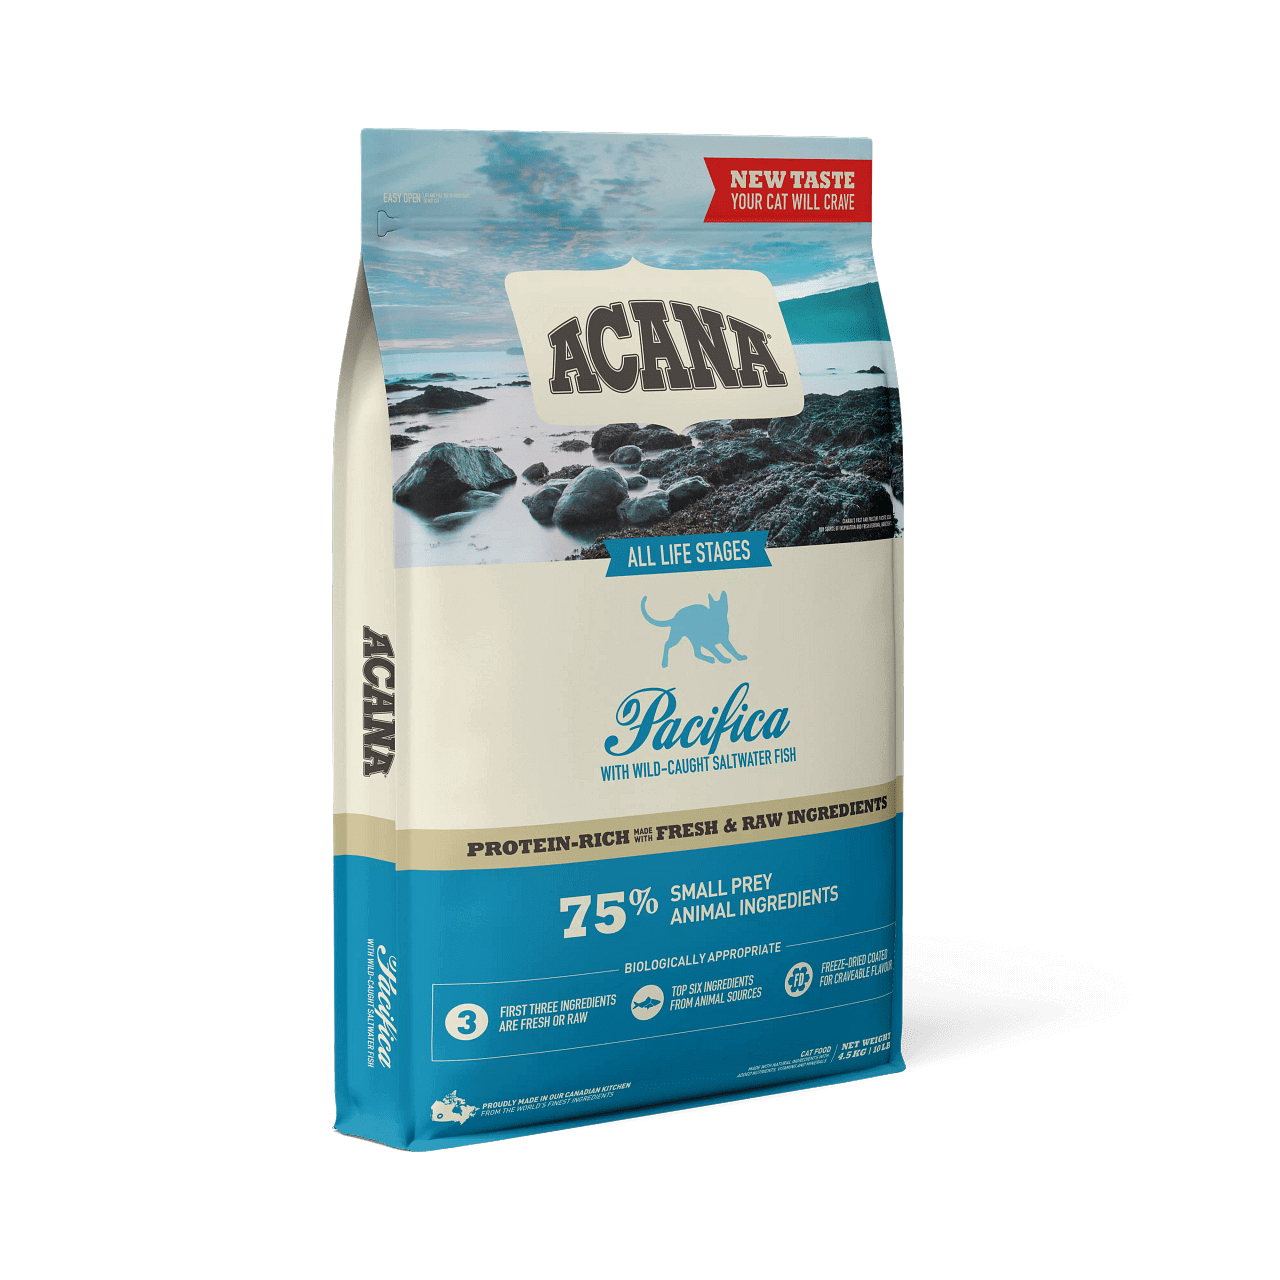 03 NS ACANA Cat Pacifica Front Right 4.5kg-min